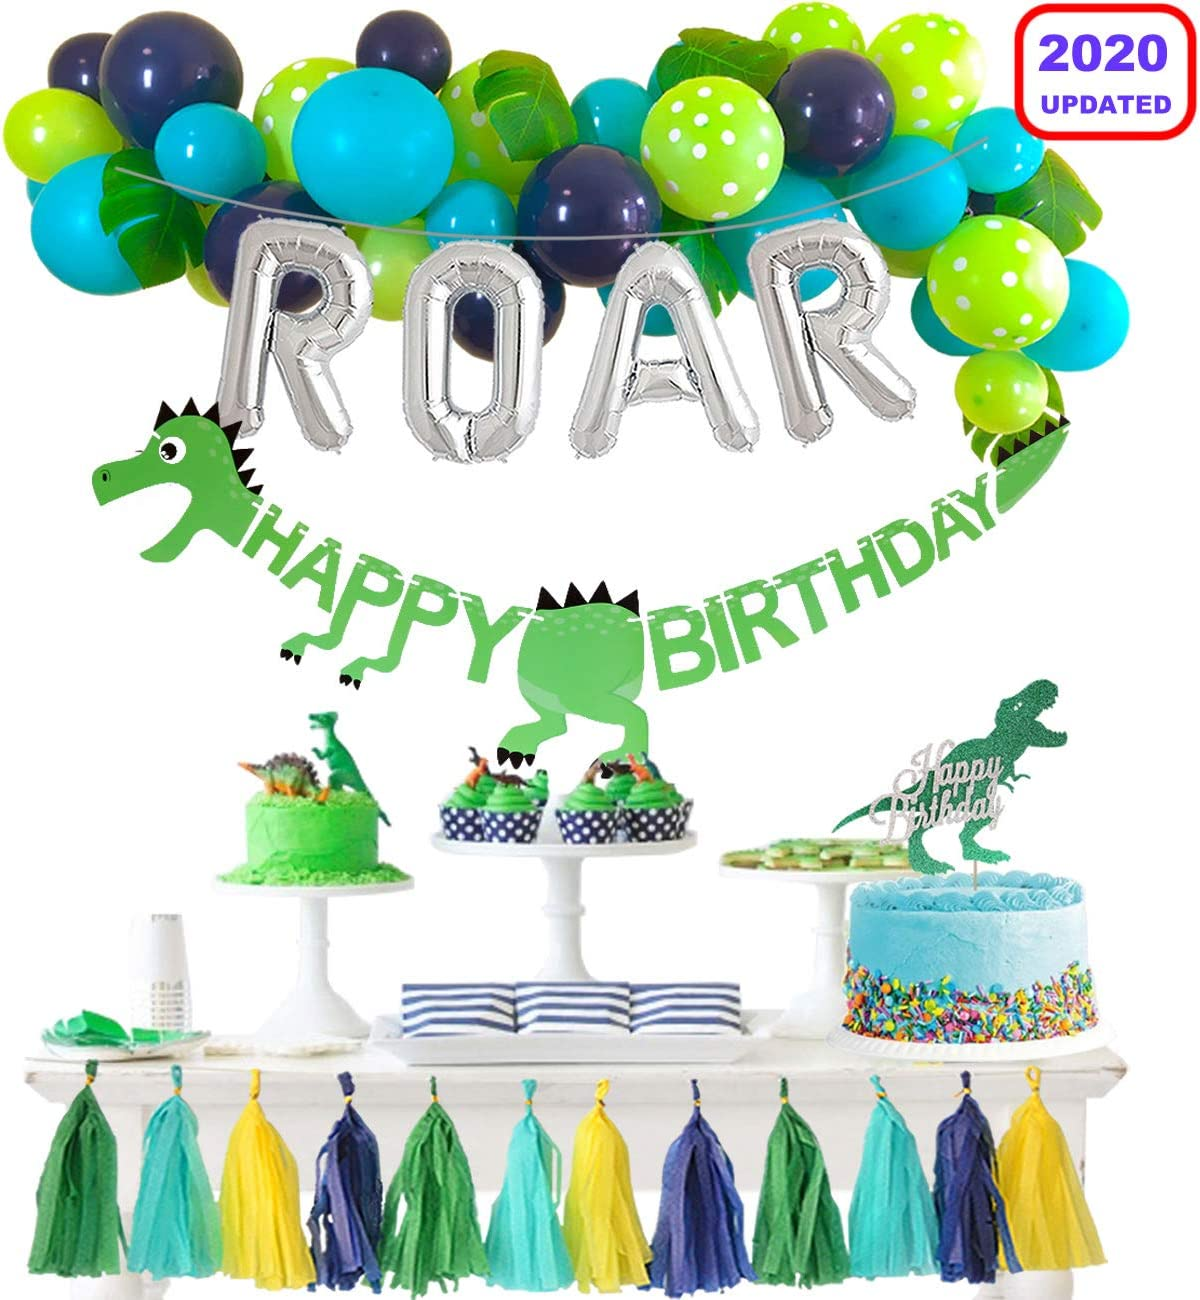 Dinosaur Party Decorations Balloons Garland Kit with Silver ROAR Foil Balloon and Cute Jungle Theme Tassels for Boys 1 2 3 4 Birthday Party Supplies Baby Shower Backdrop Decor